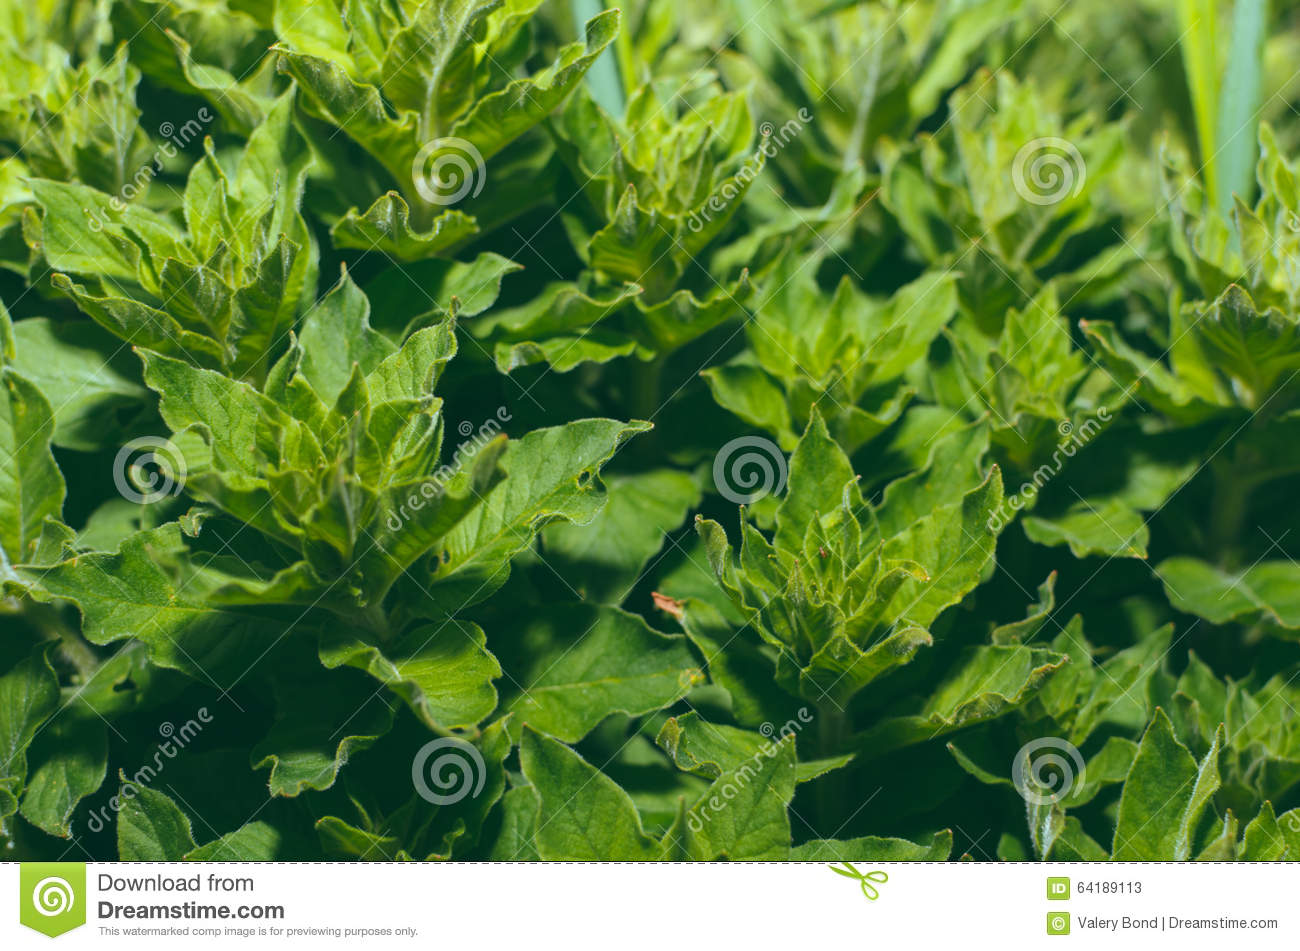 Plantes vertes dans le jardin photo stock image 64189113 for Plante verte jardin